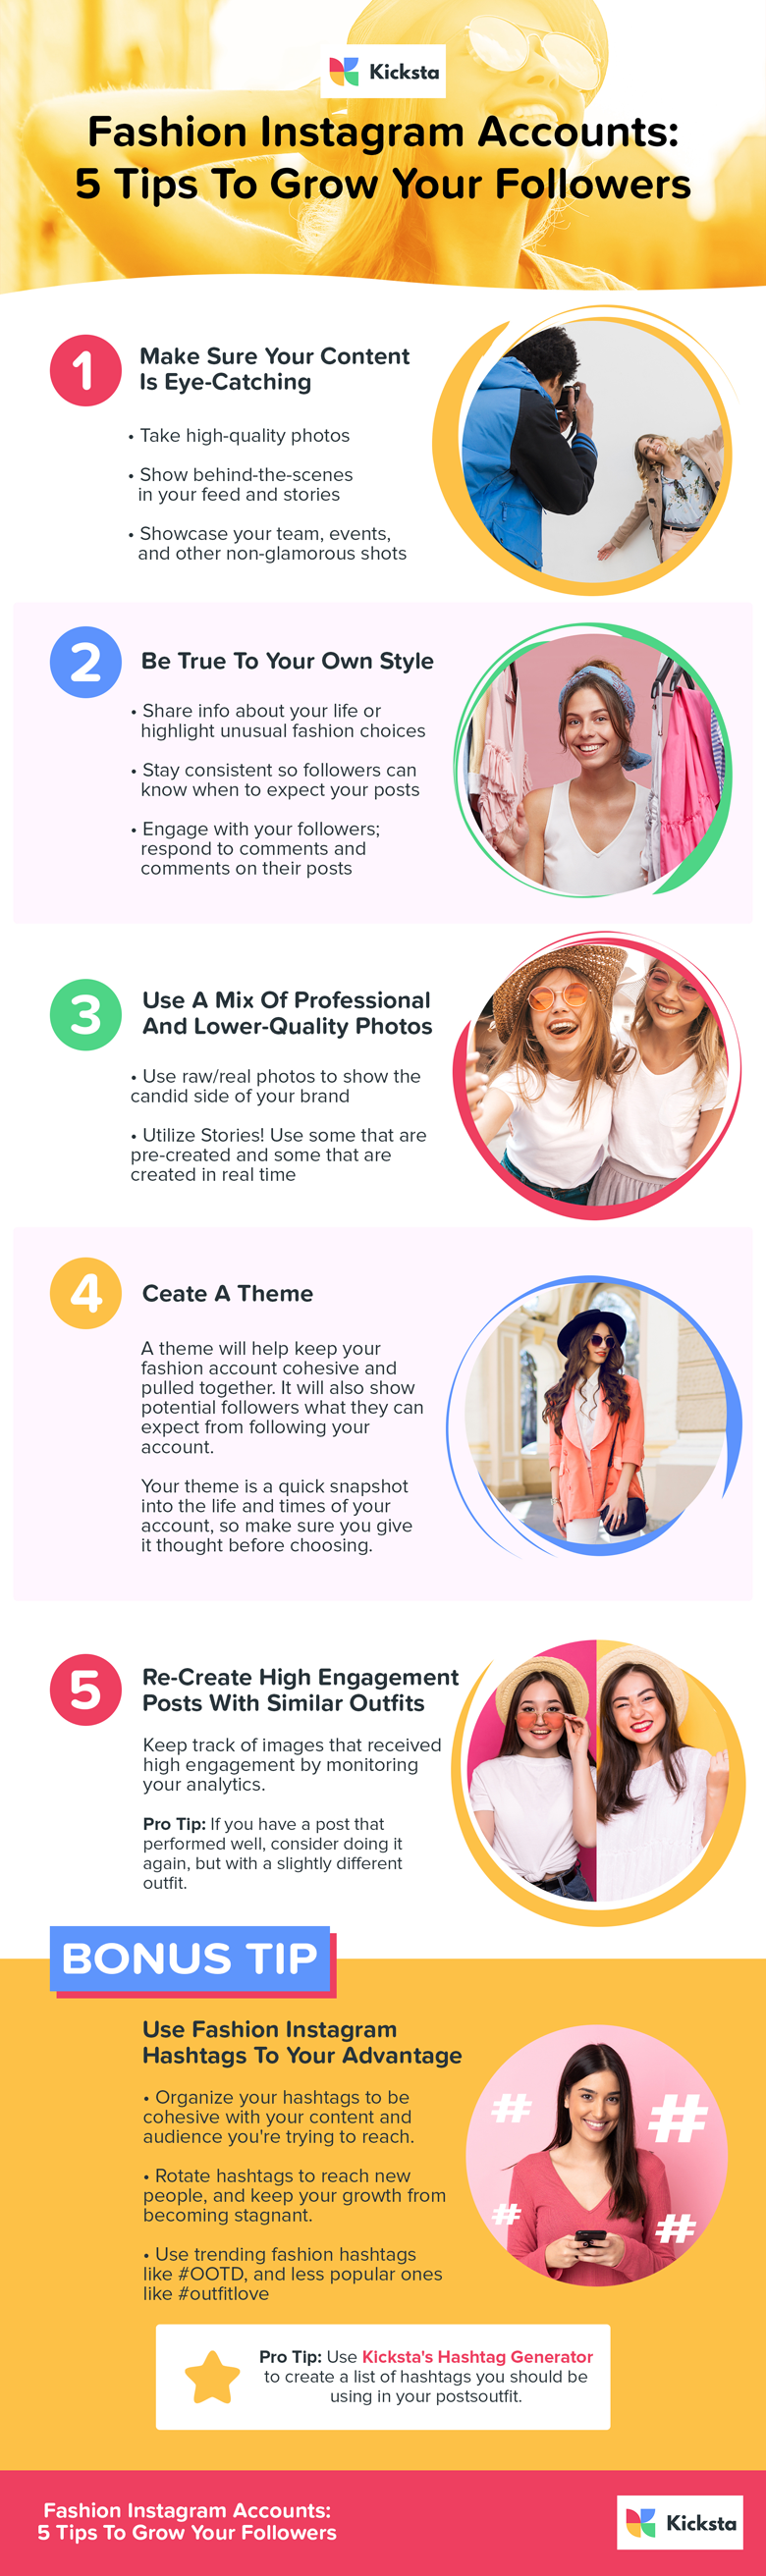 5 Tips To Grow Your Fashion Instagram Accounts Infographic